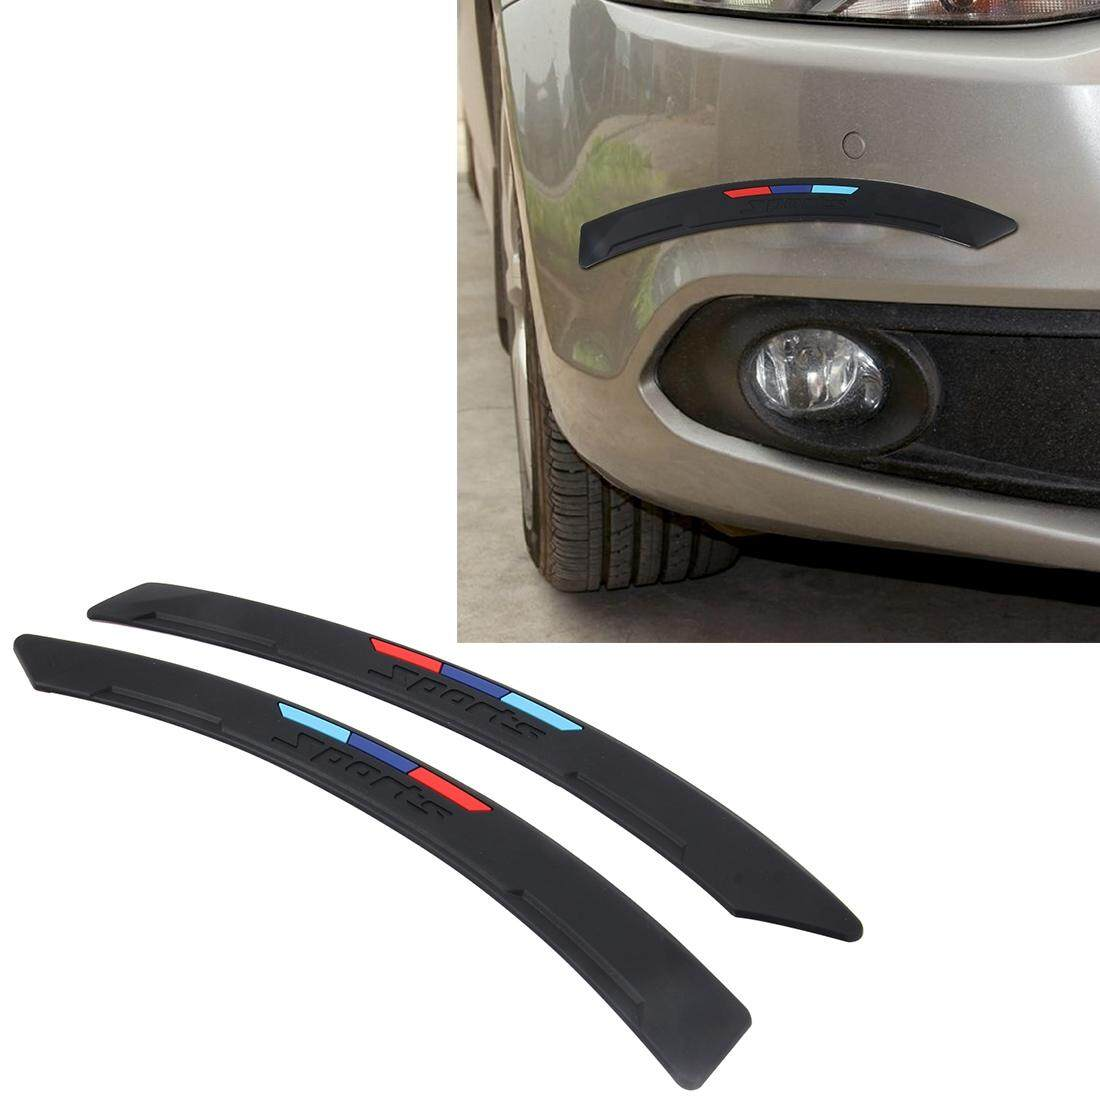 ... PROTECTION STRIP SCRATCH PROTECTOR CAR DOOR GUARD CRASH BARRIERS STICKER INTL. Flag Rear View Mirror Door Edge Guards Source · Moulding Trim Strip Car .